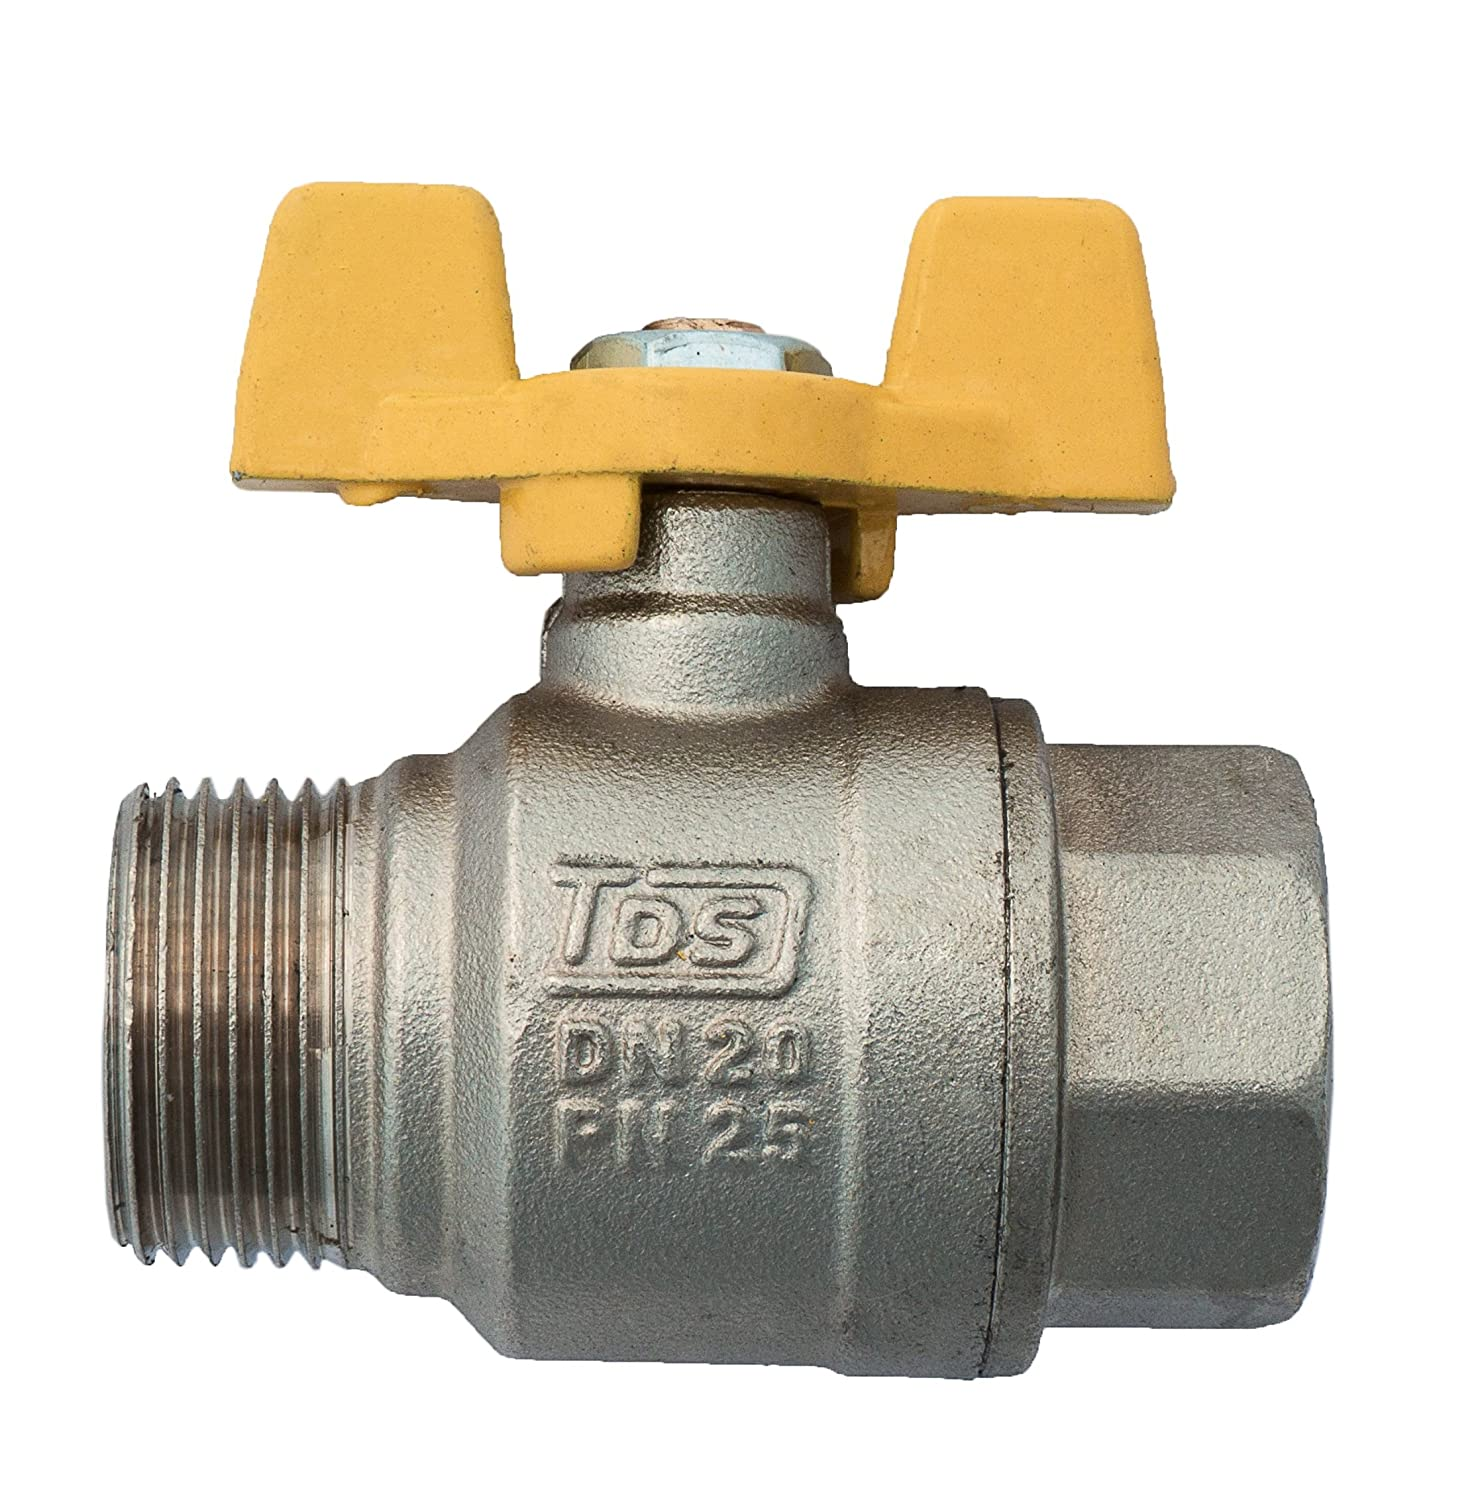 3/4' Gas Ball Valve FEMALE X MALE BSP TF Yellow Butterfly Handle BFG